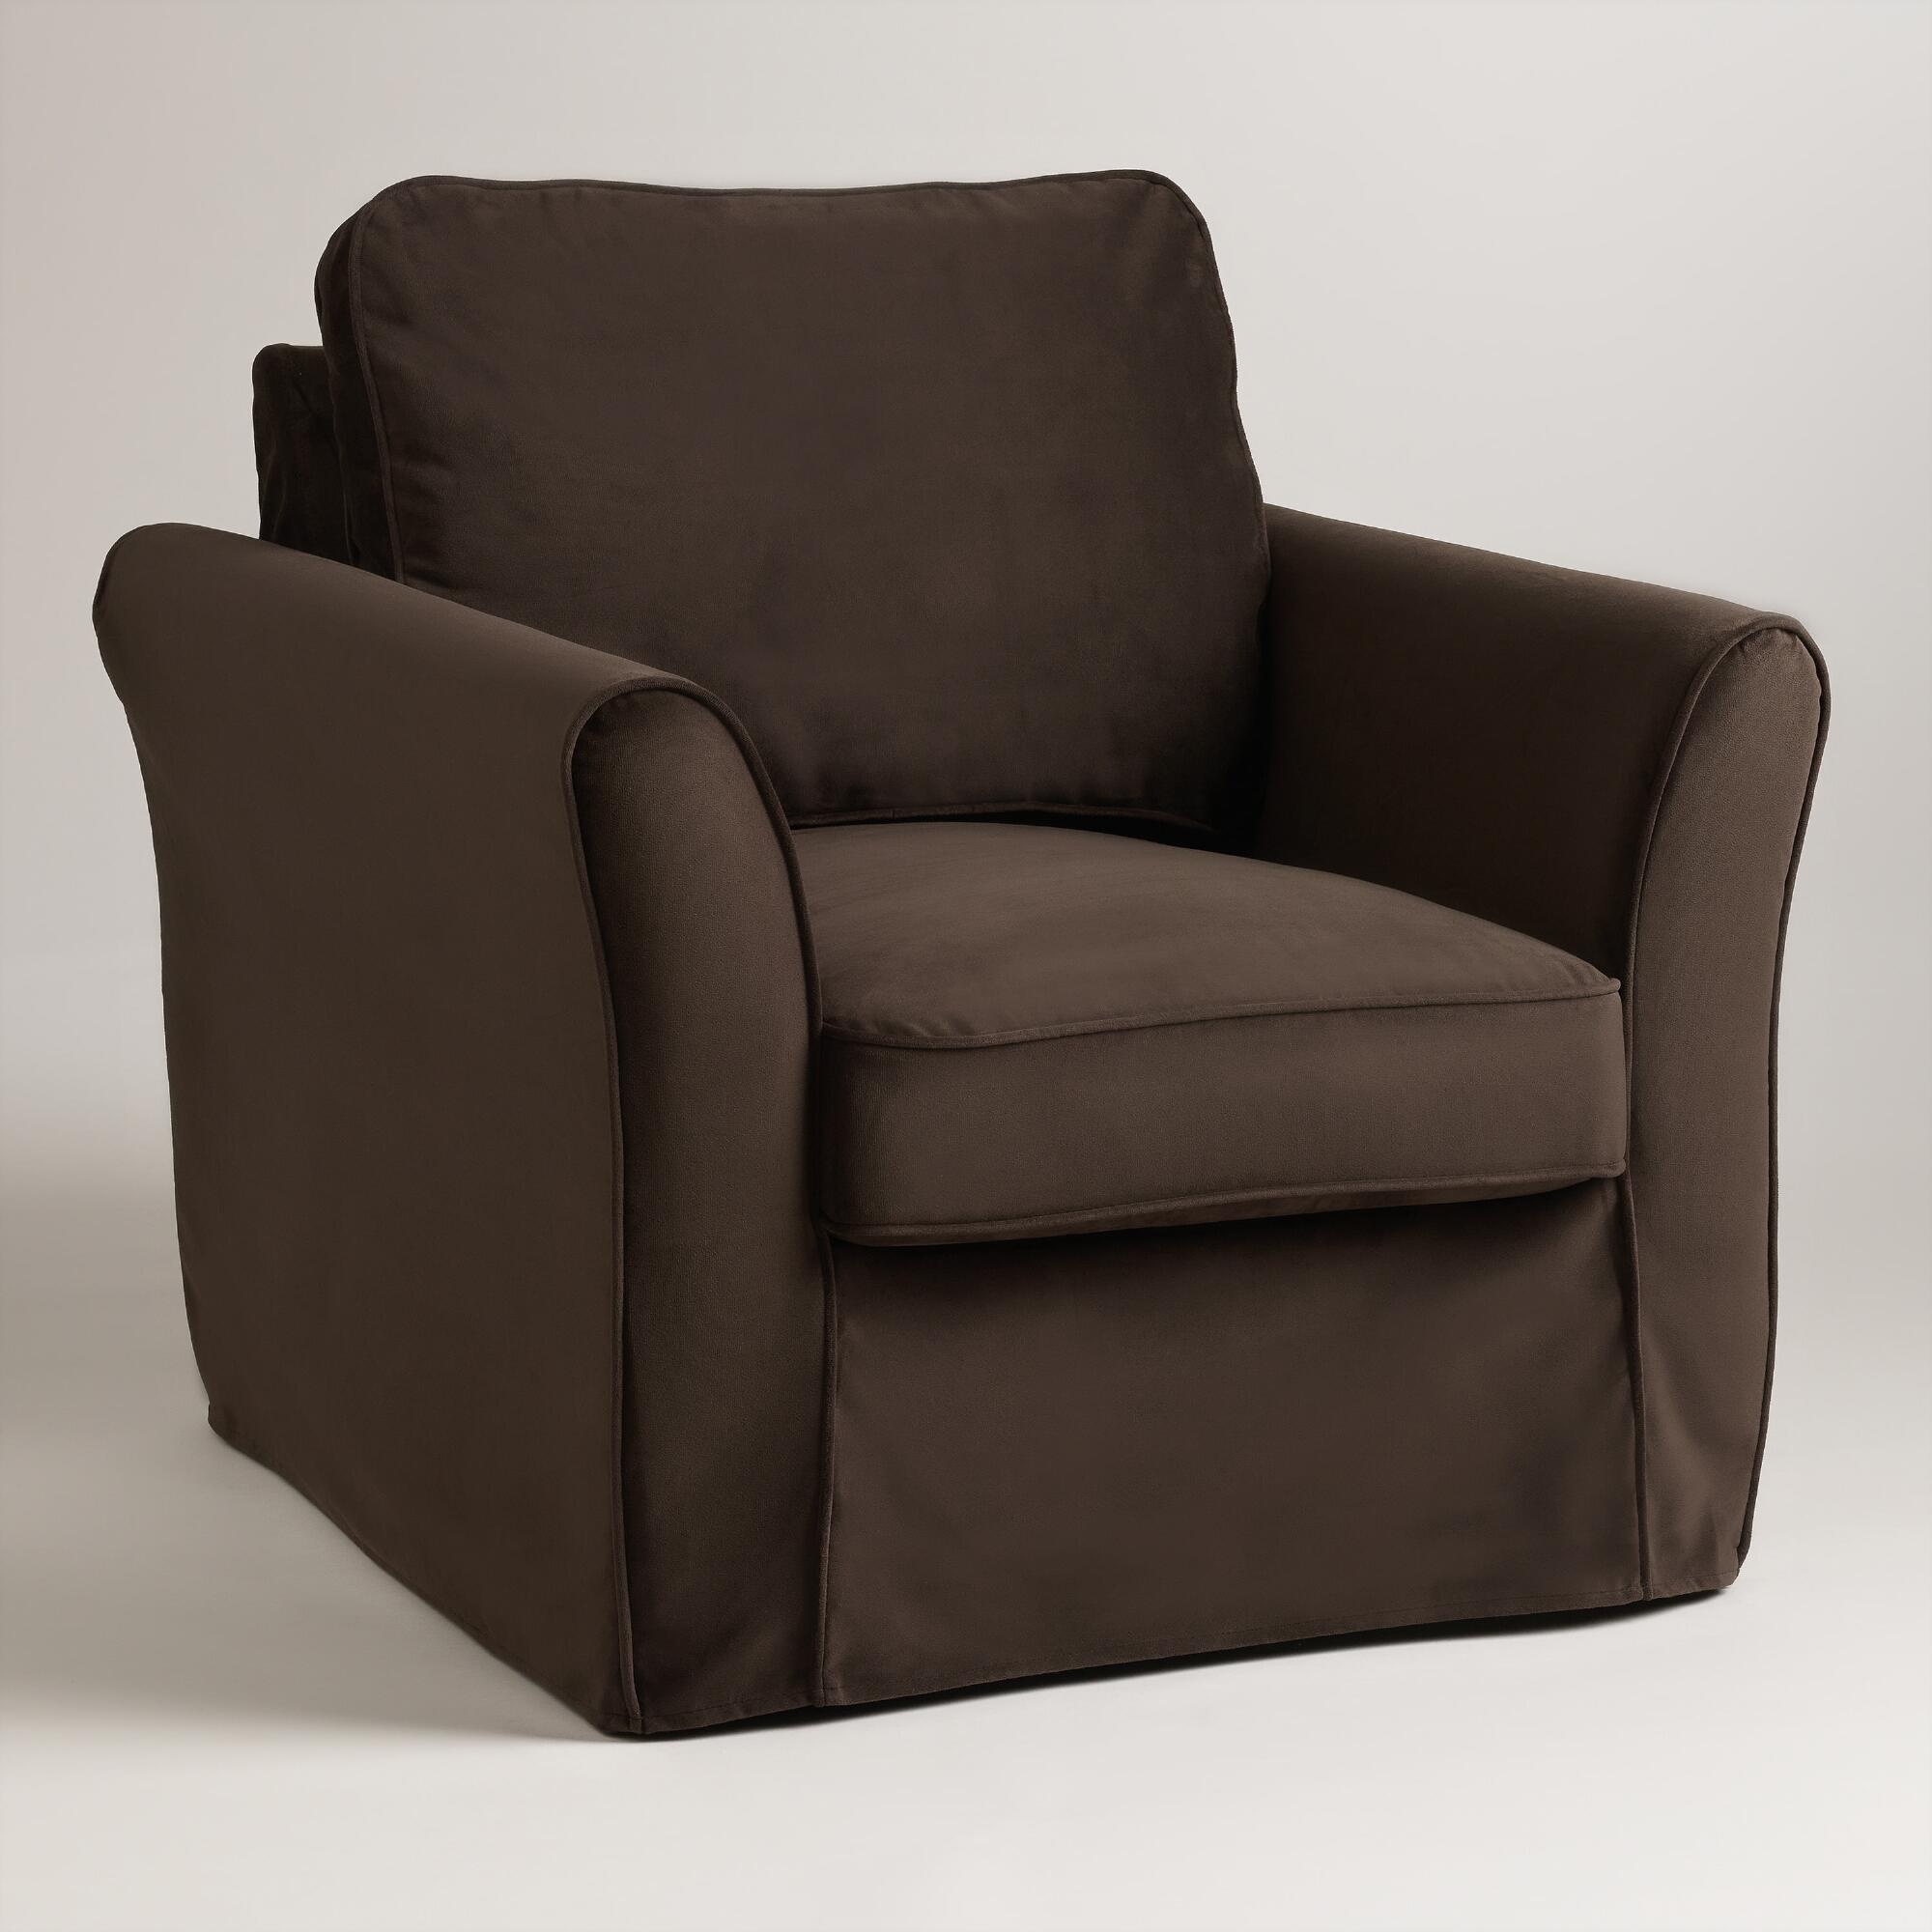 Chocolate Brown Velvet Loose Fit Luxe Chair Slipcover